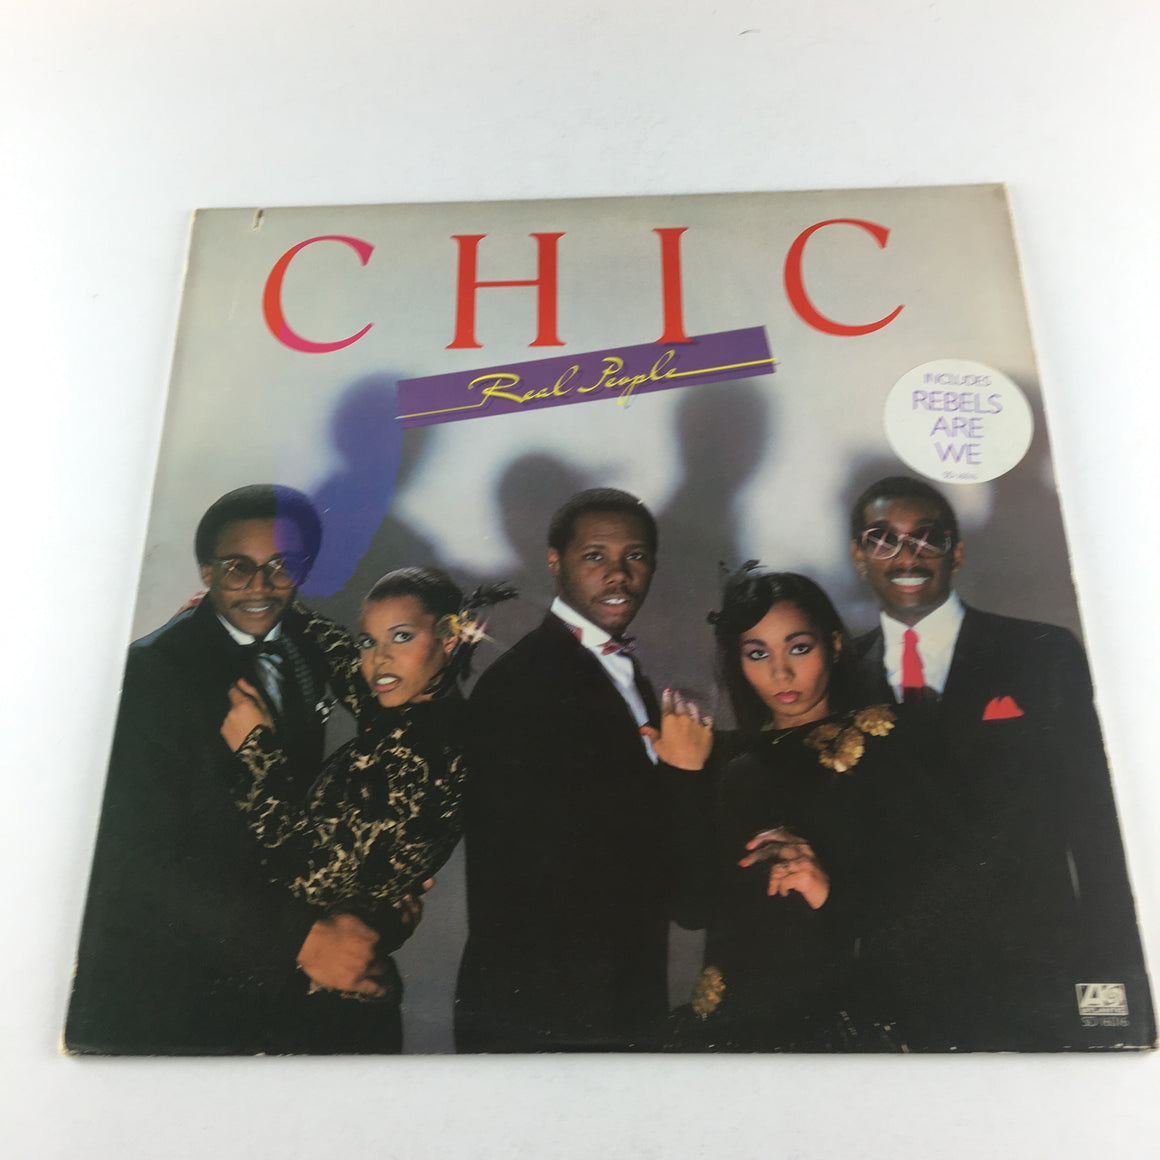 Chic Real People Used Vinyl LP VG+ SD 16016